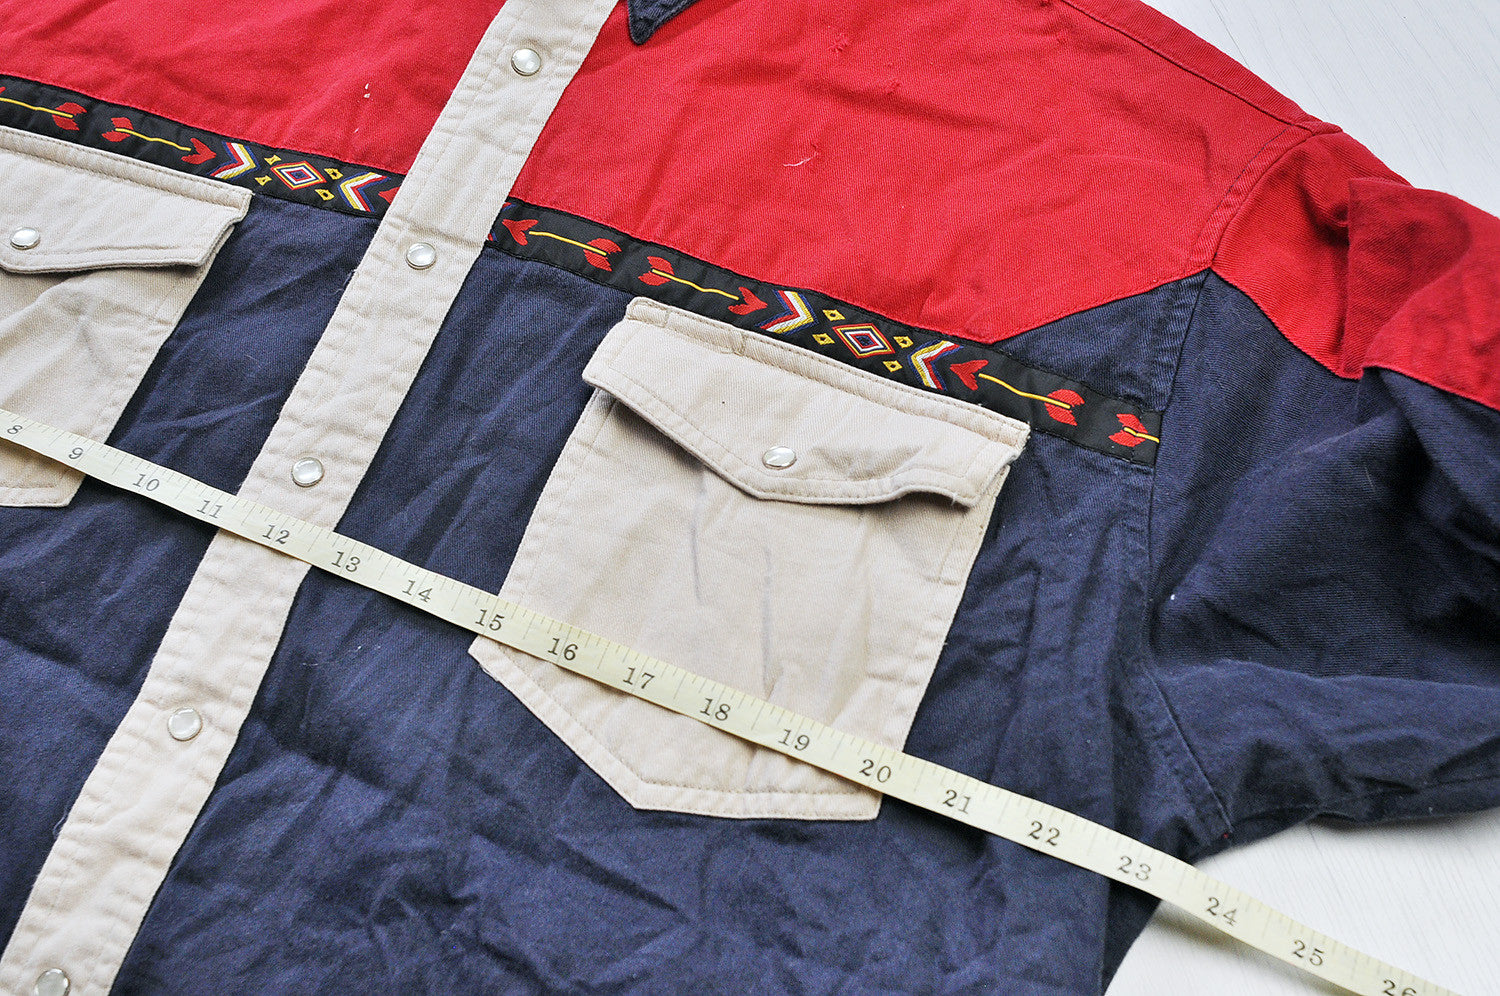 Vintage Wrangler Western Patchwork Long Sleeve Shirt - Navy/Red